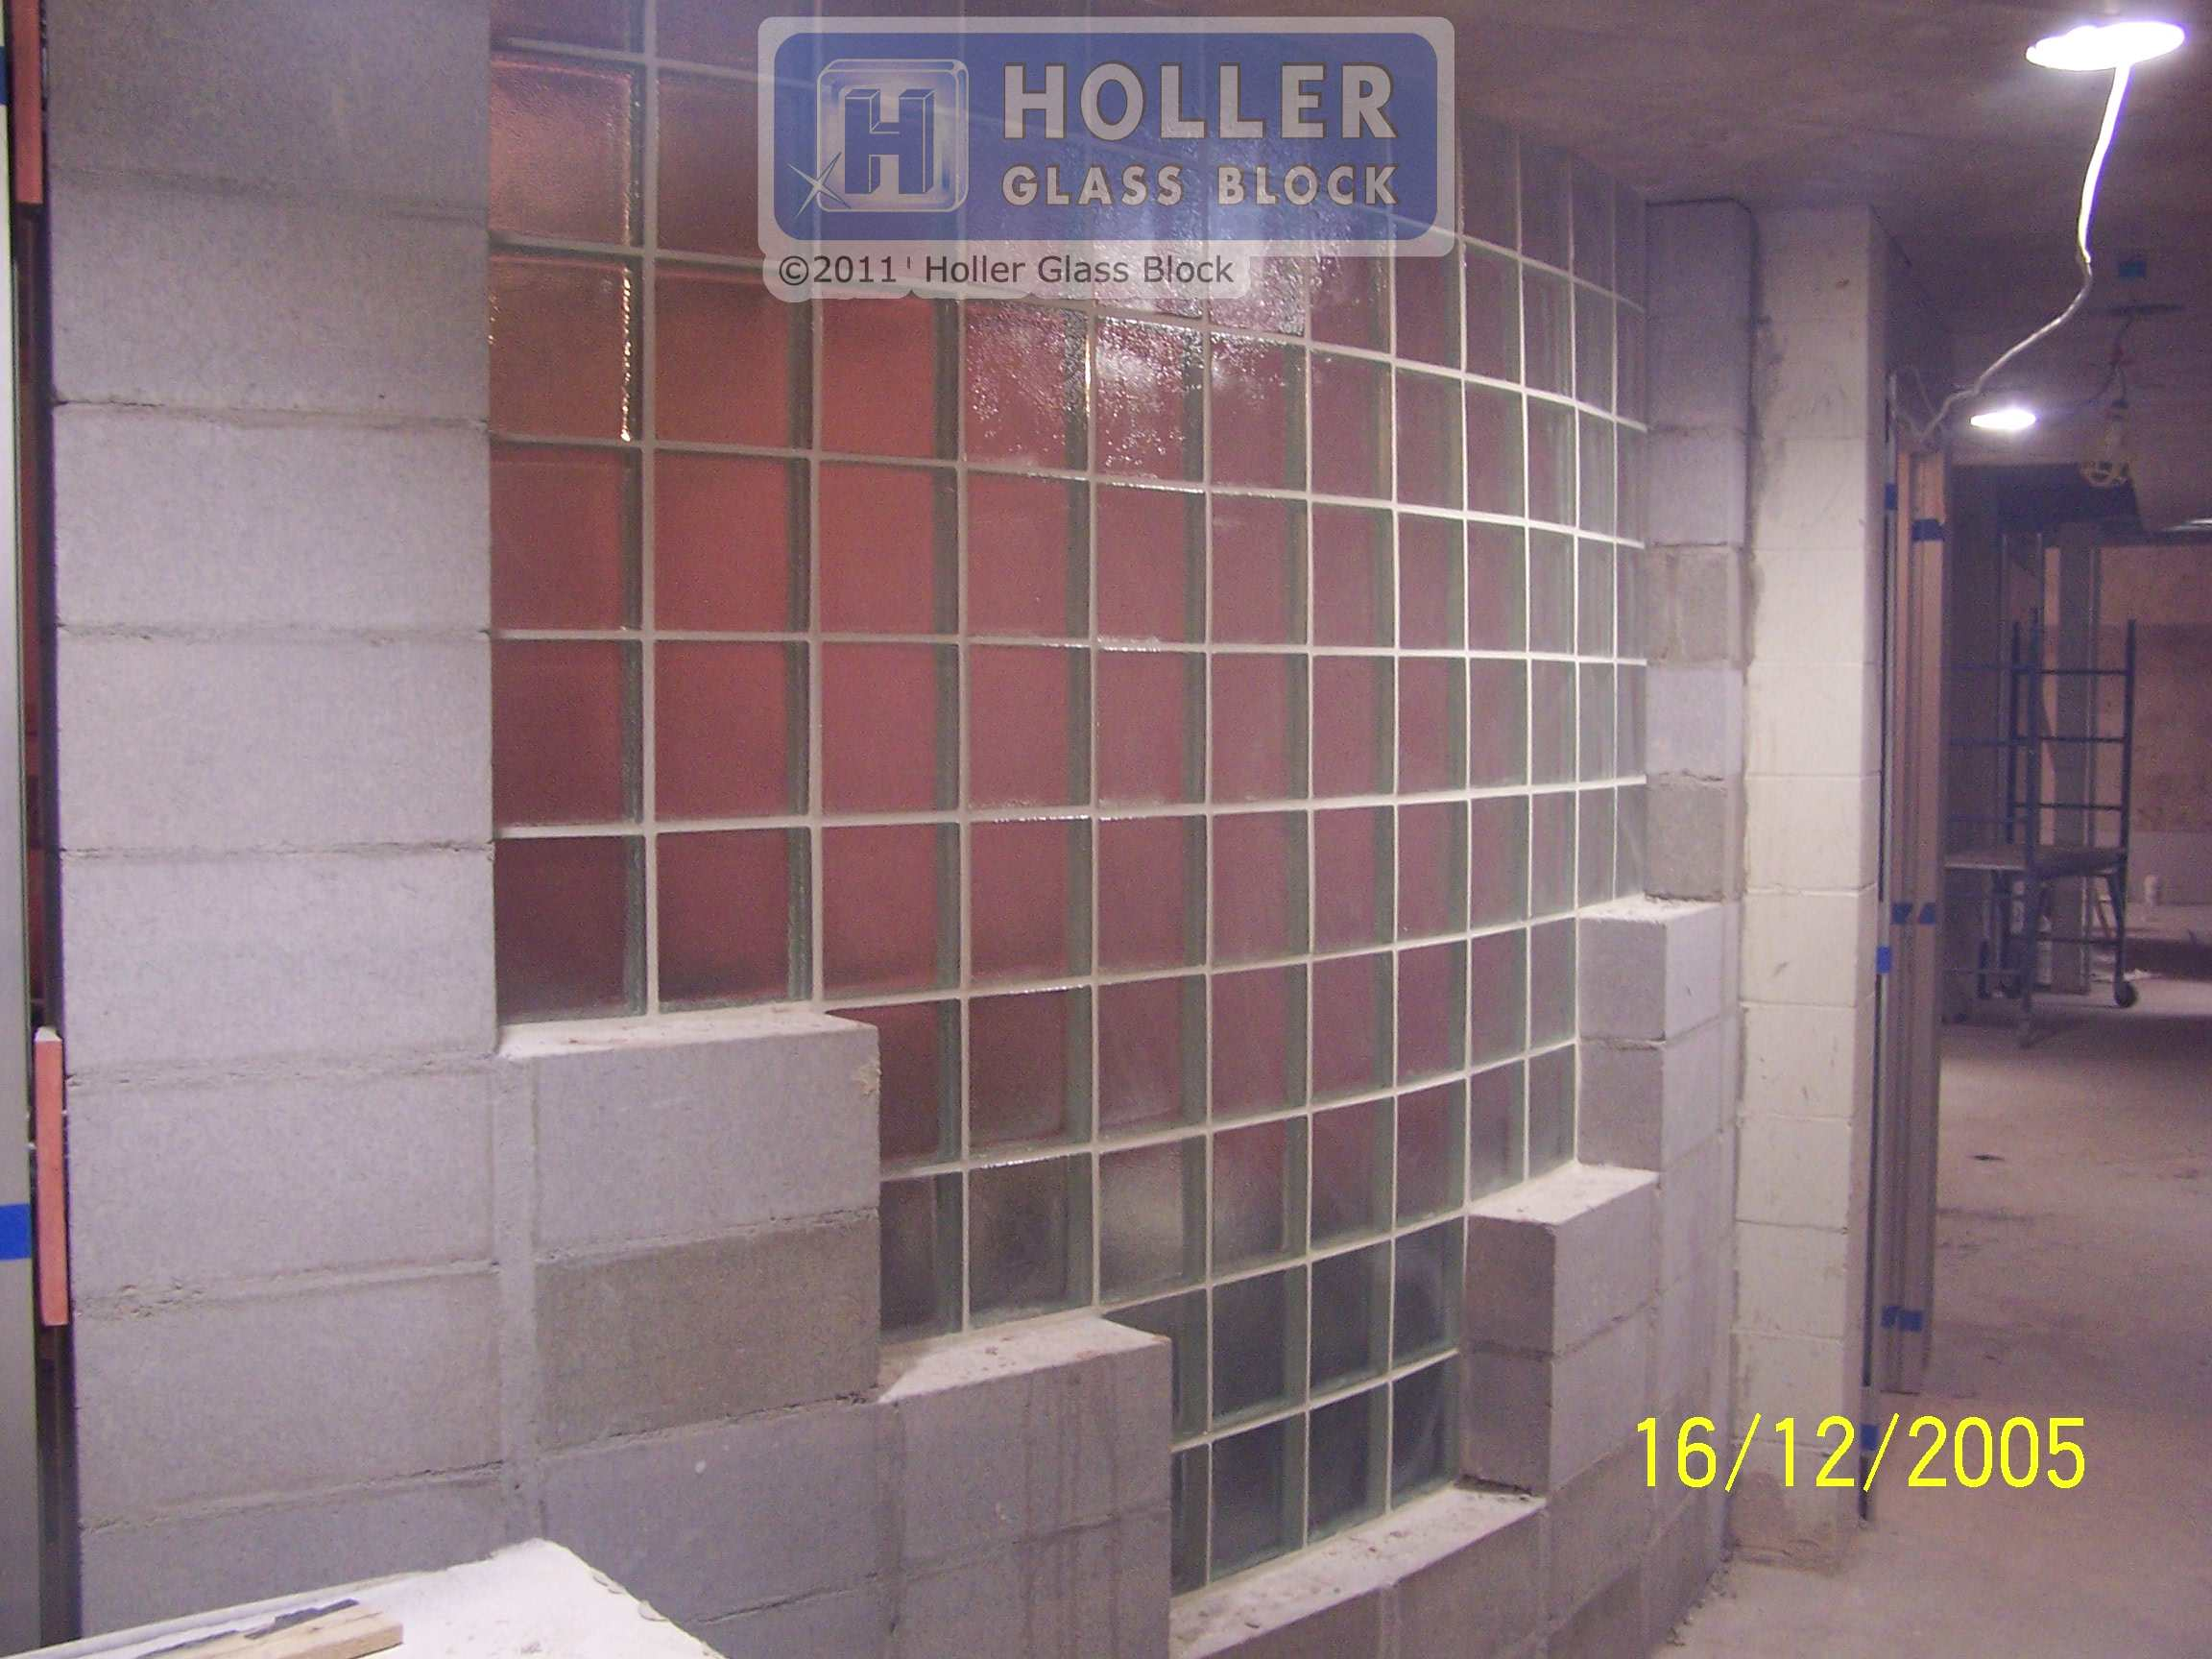 Kevin Holler of Holler Glass Block stands behind all of his work.  Holler Glass Block installation company builds and installs glass block windows, glass block shower walls, glass block bars, and anything made of glass block; Glass block installation services for Minneapolis St. Paul Twin Cities area; glass block projects include bathroom remodels, new construction; kitchen windows, basement windows, commercial glass block, glass block bars, glass block bathroom windows; .JPG